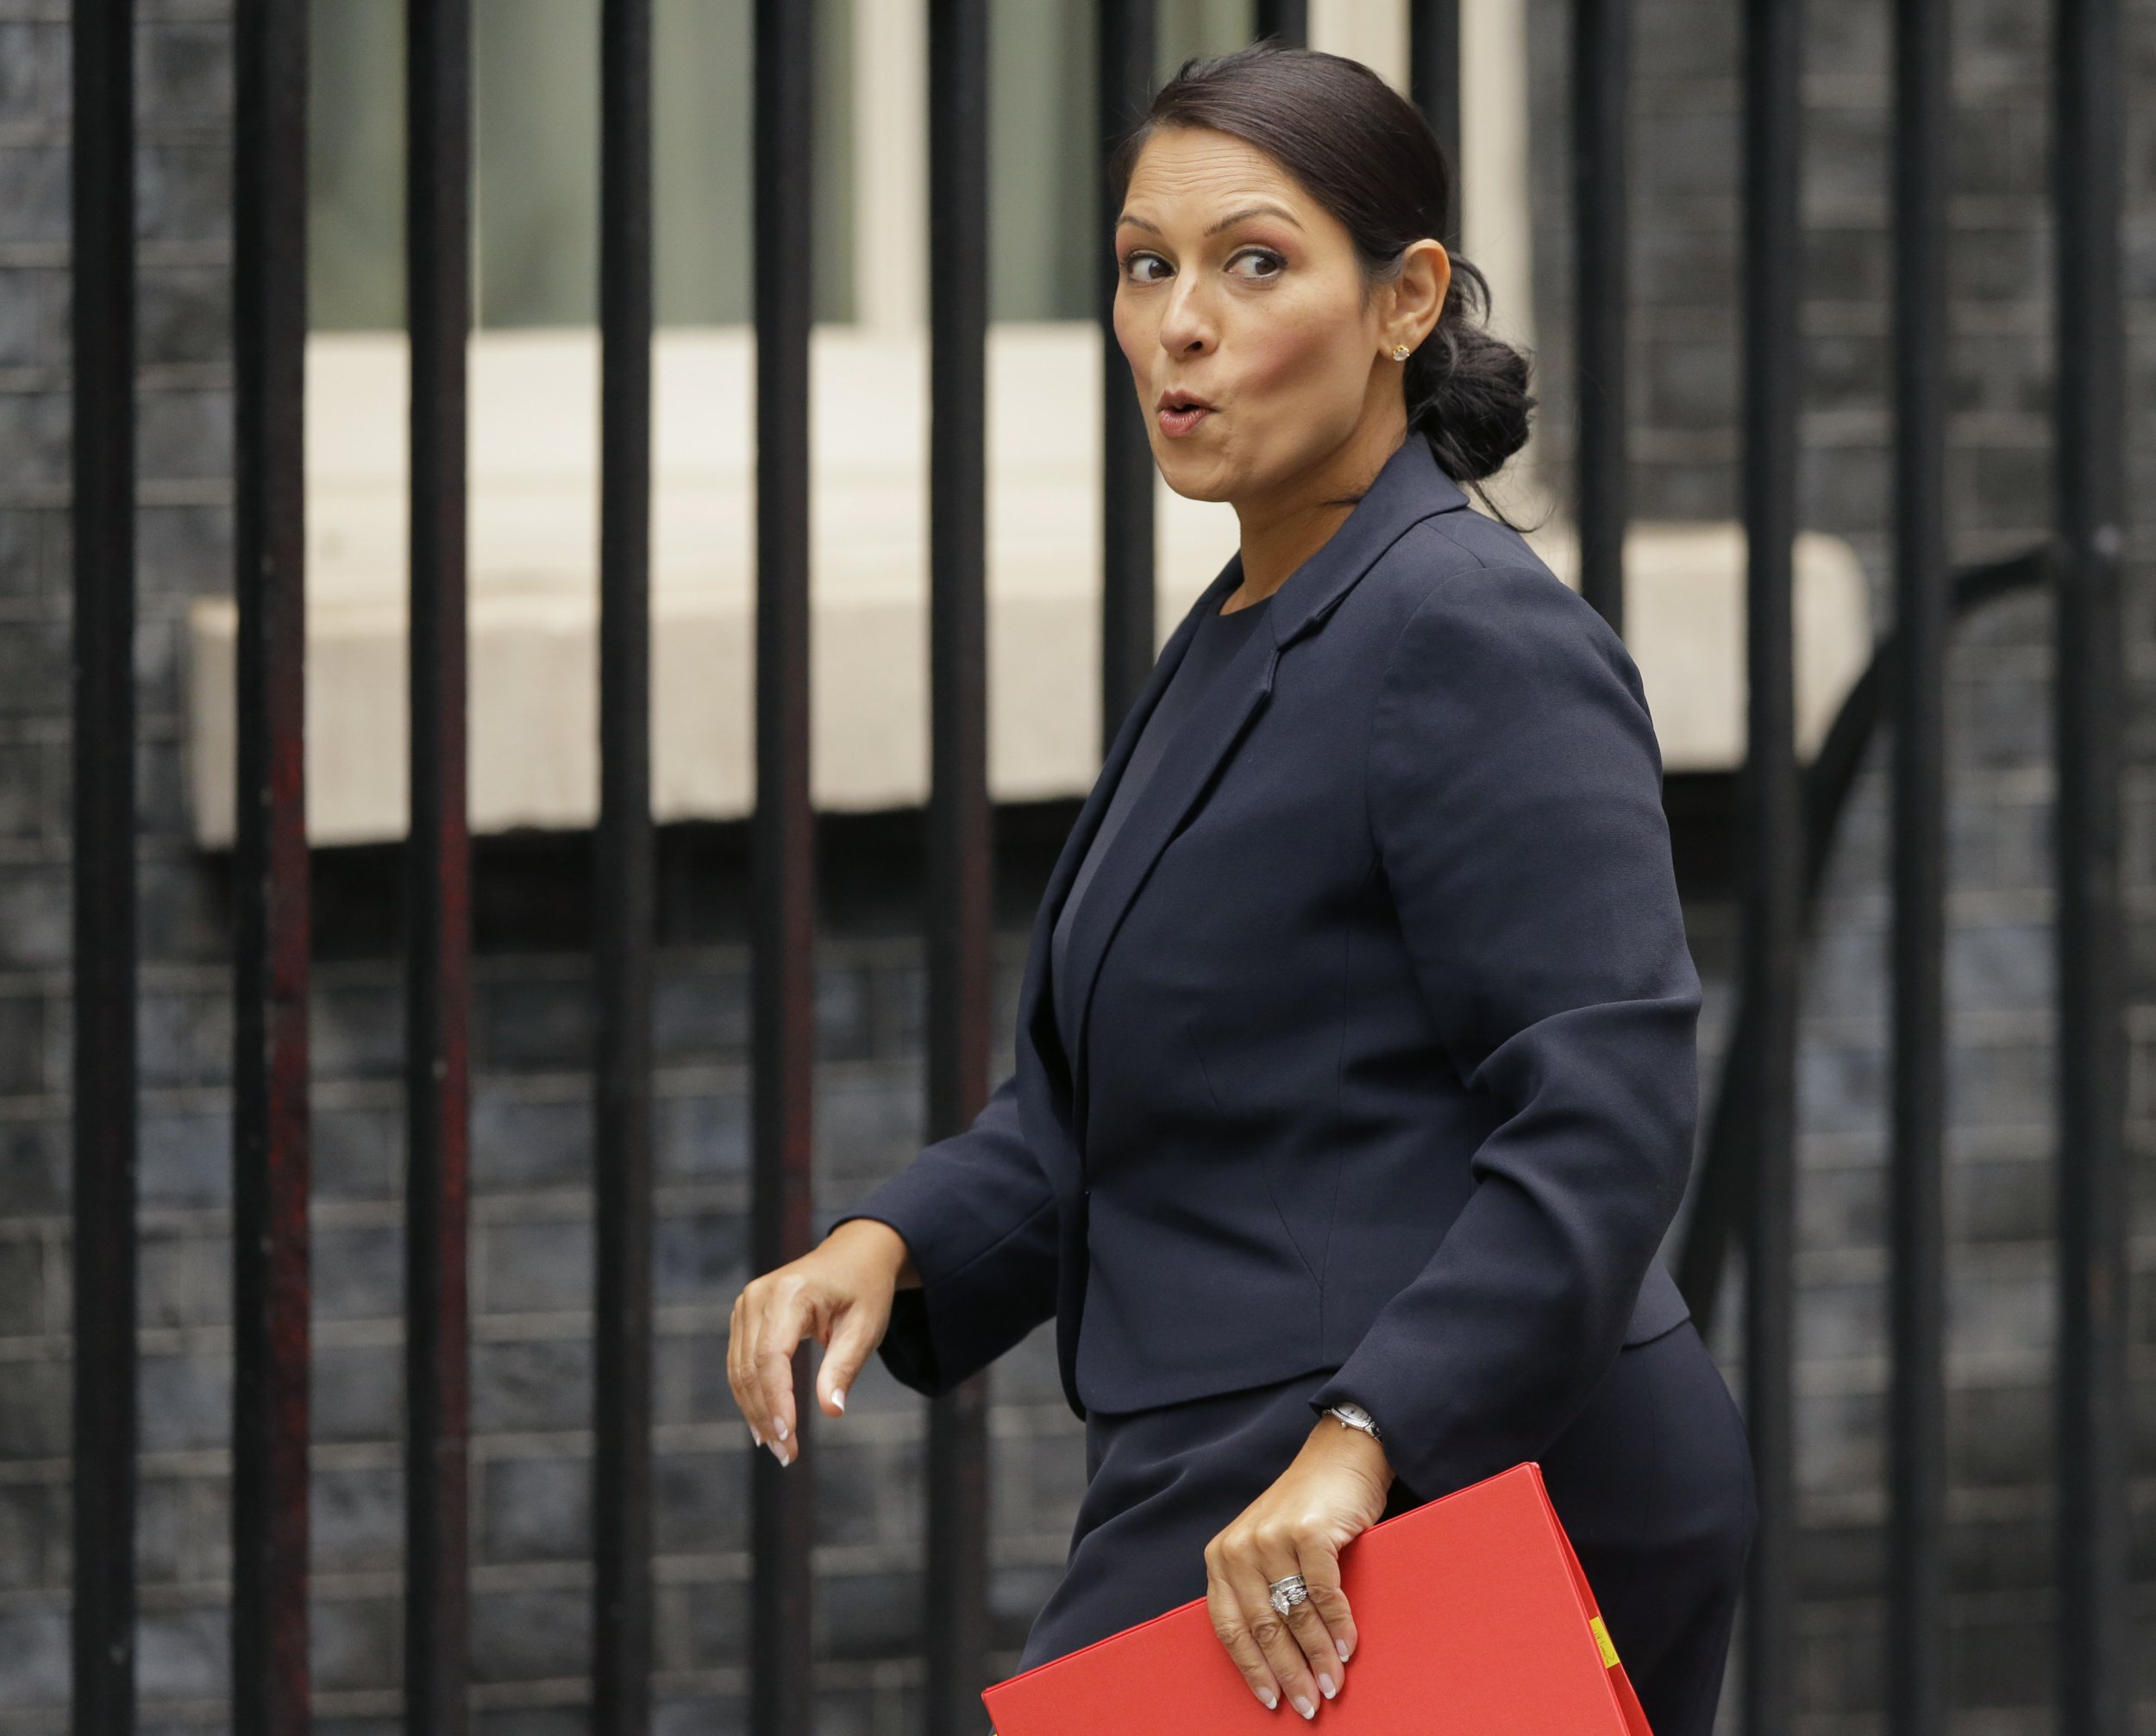 Priti Patel apologises for meetings with Israeli government during family holiday